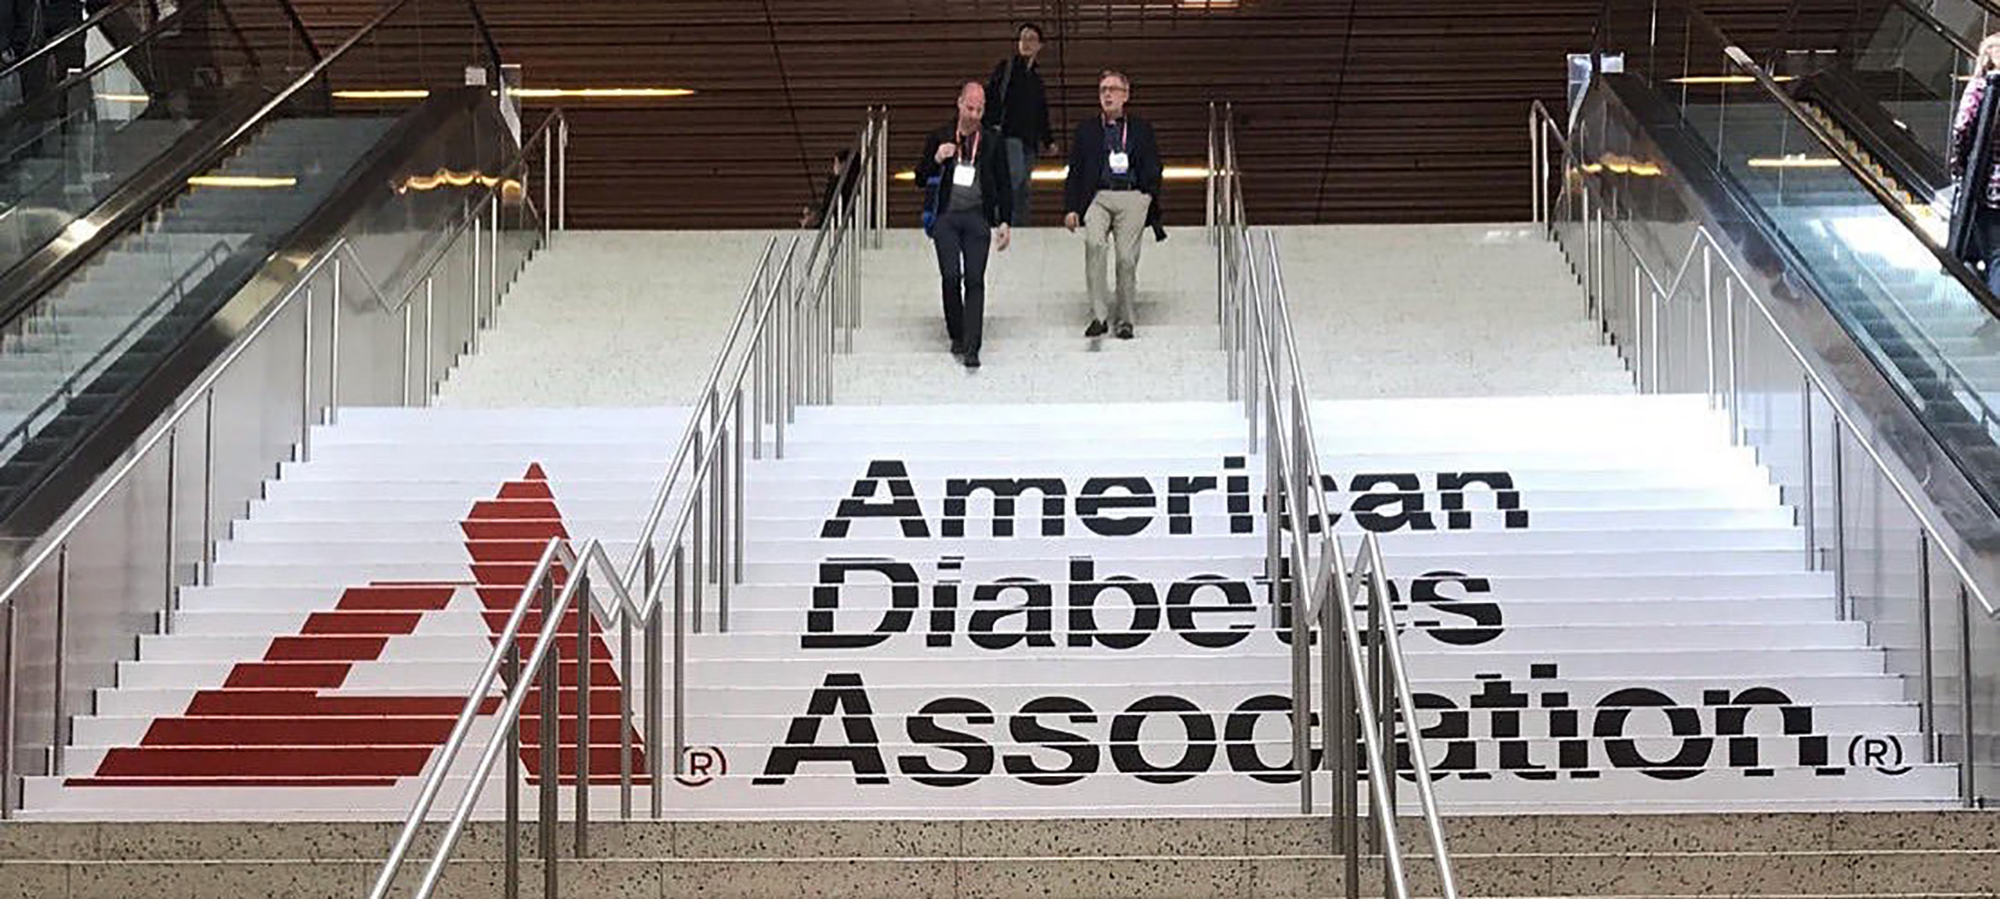 A focus on language, stigma and communication at the #ADA2019